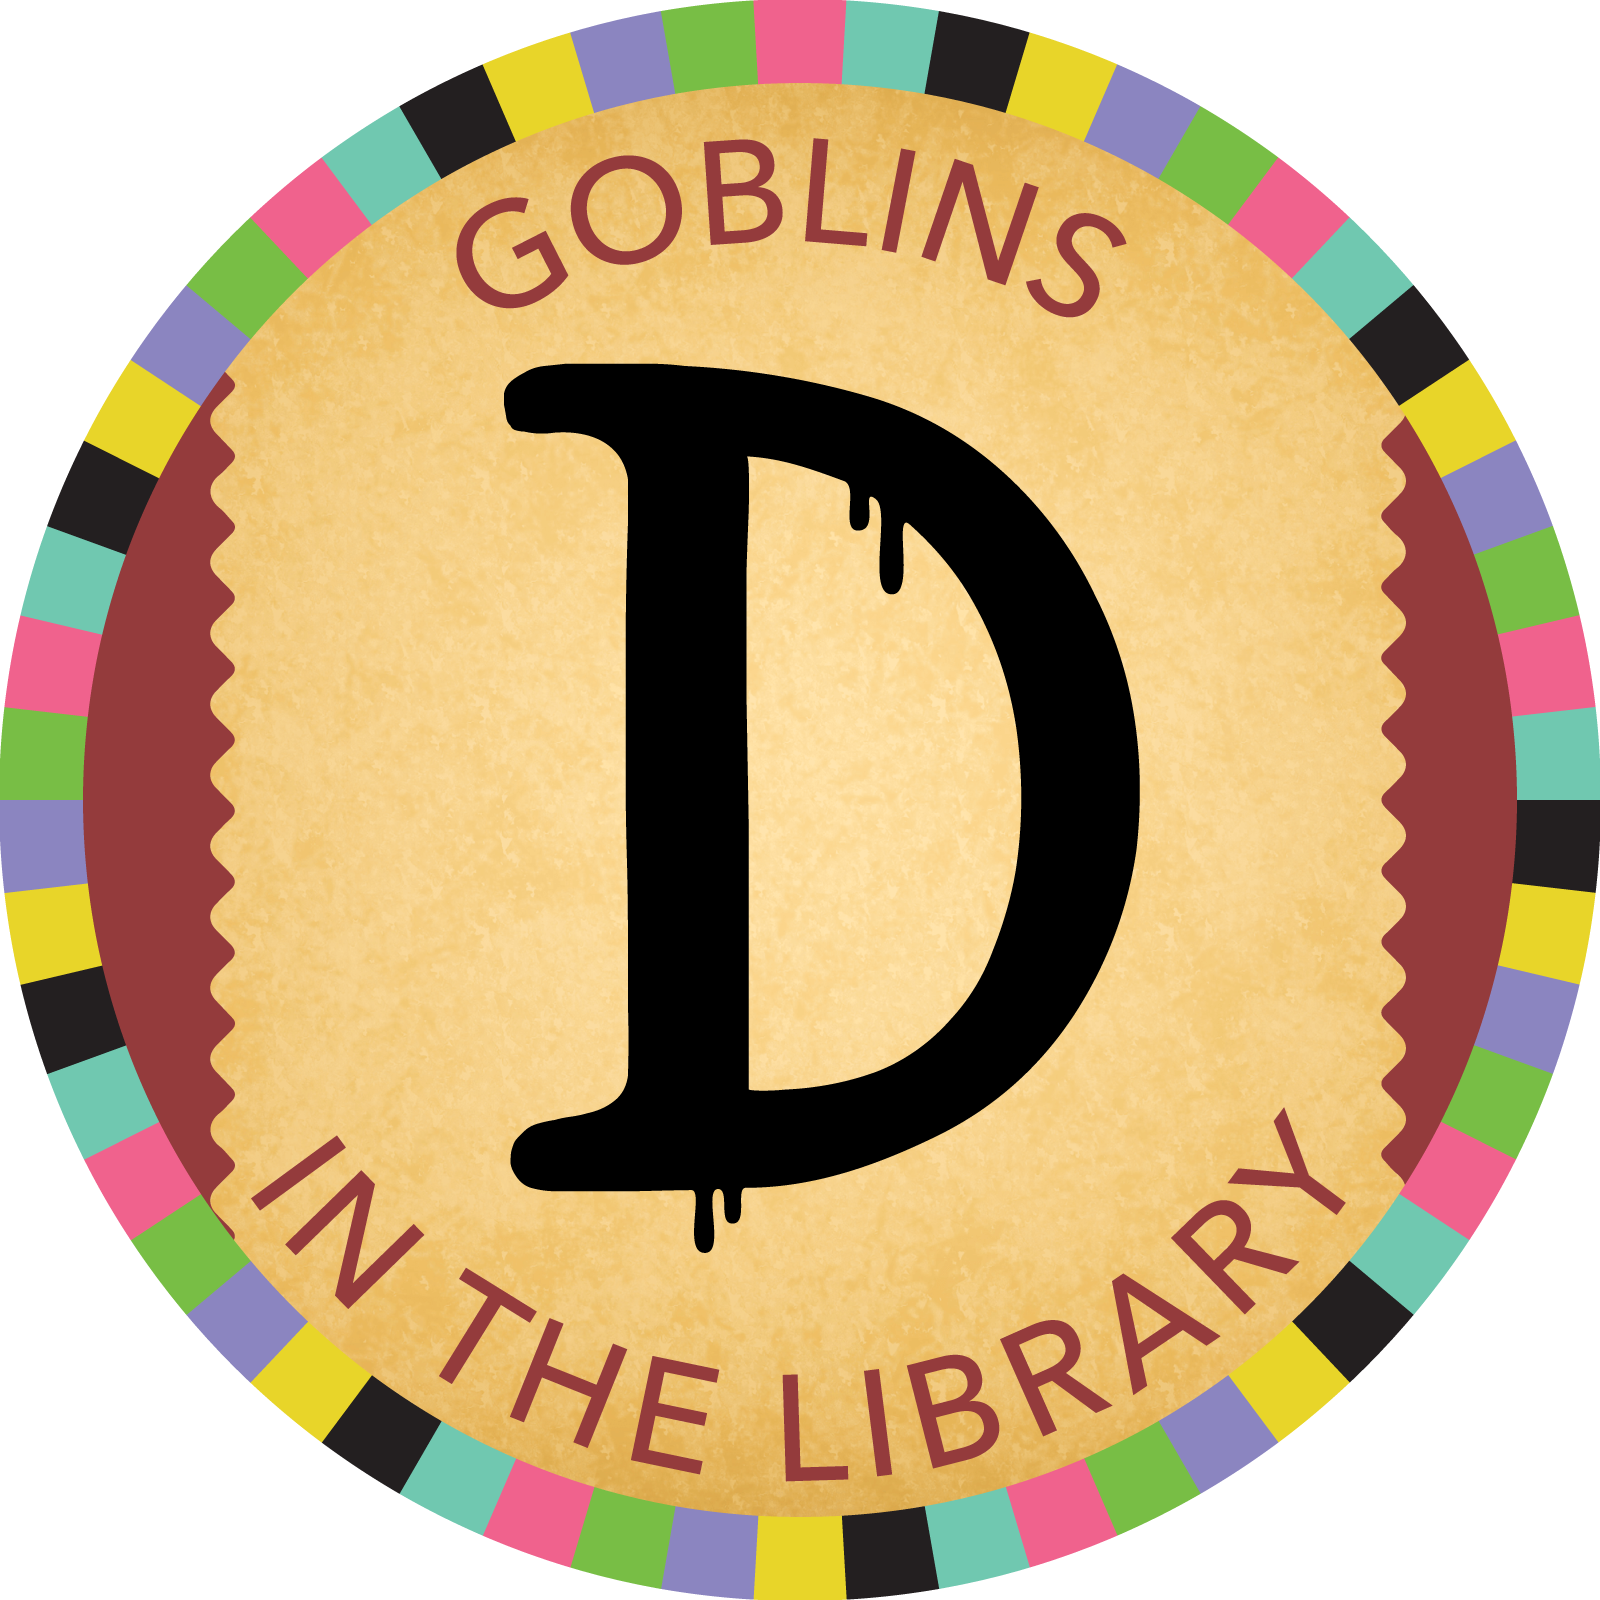 Goblins In The Library badge image